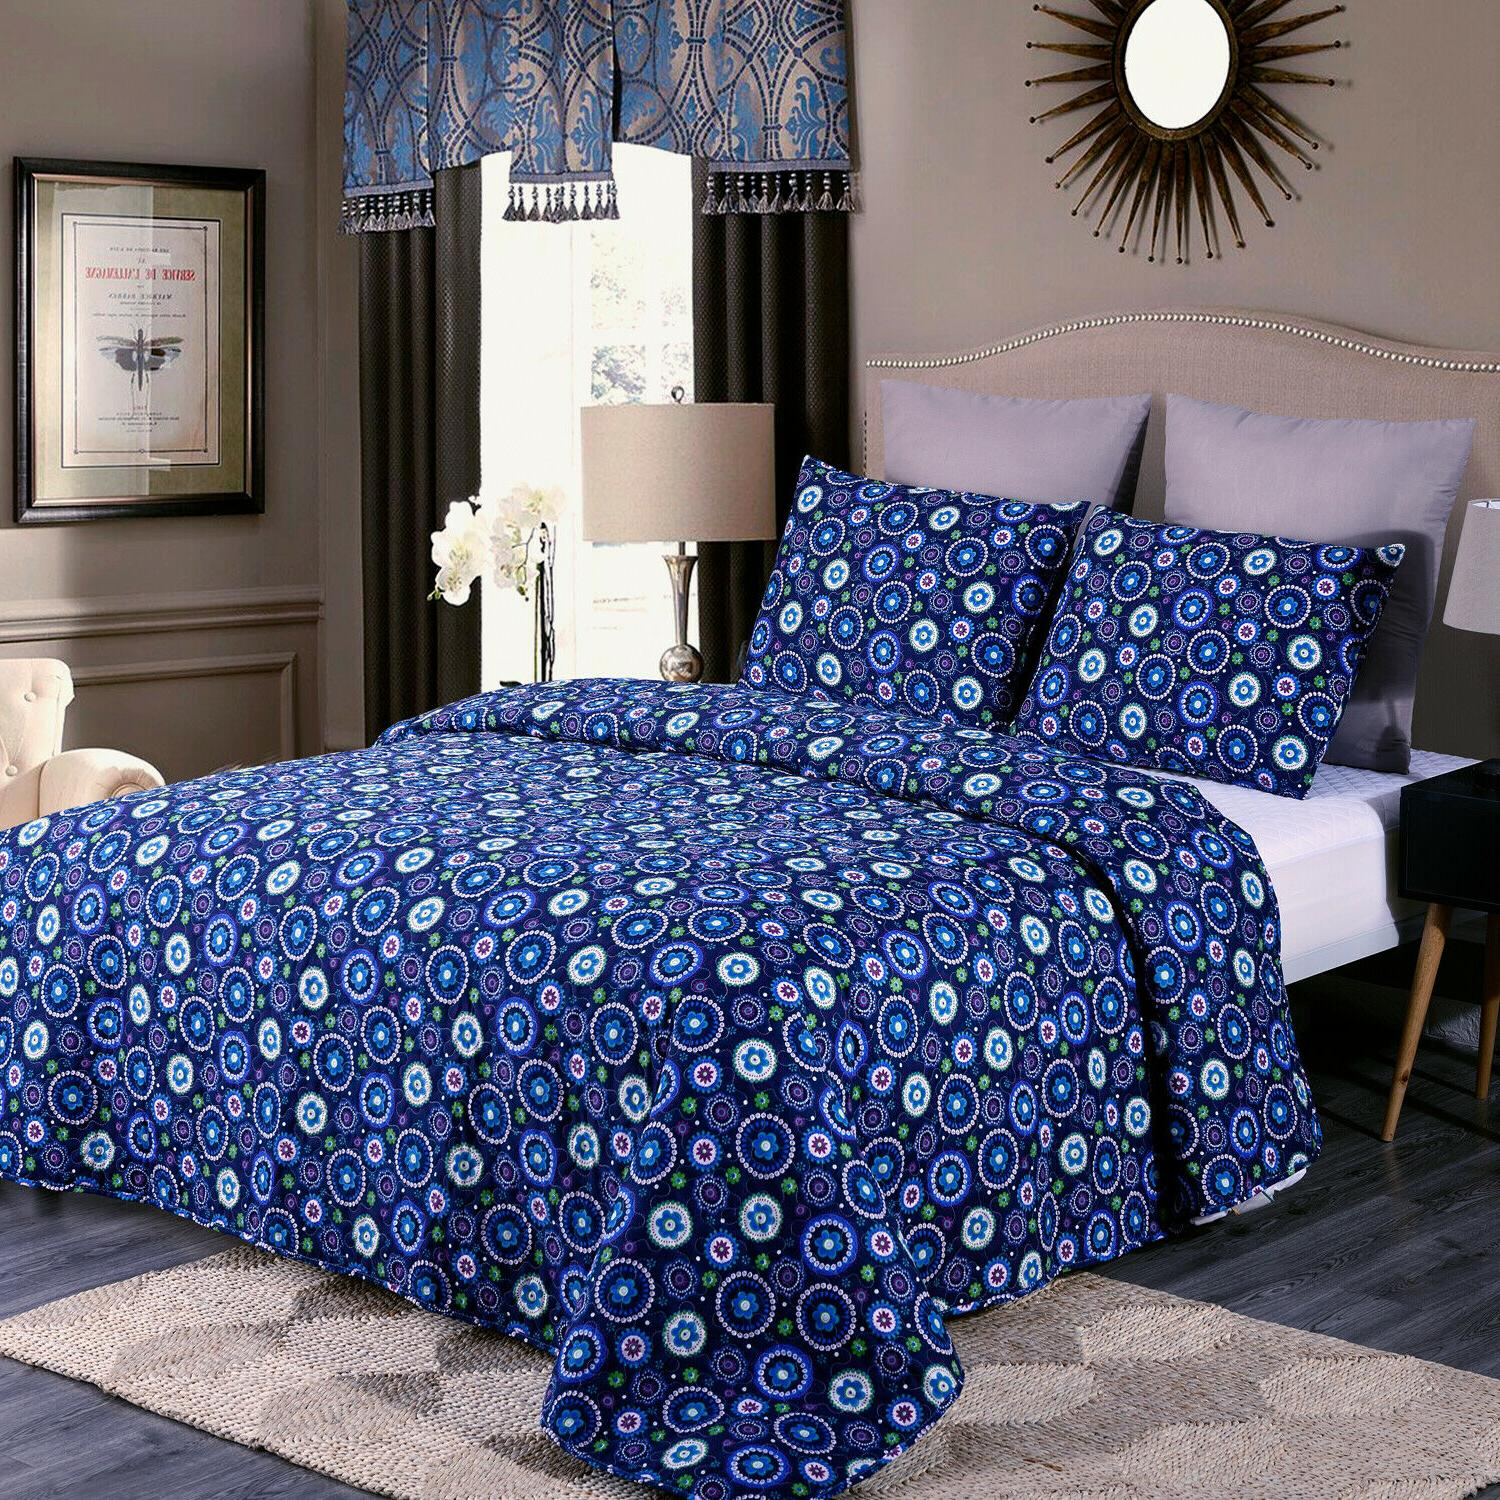 3-Piece Beach Set Bedspread